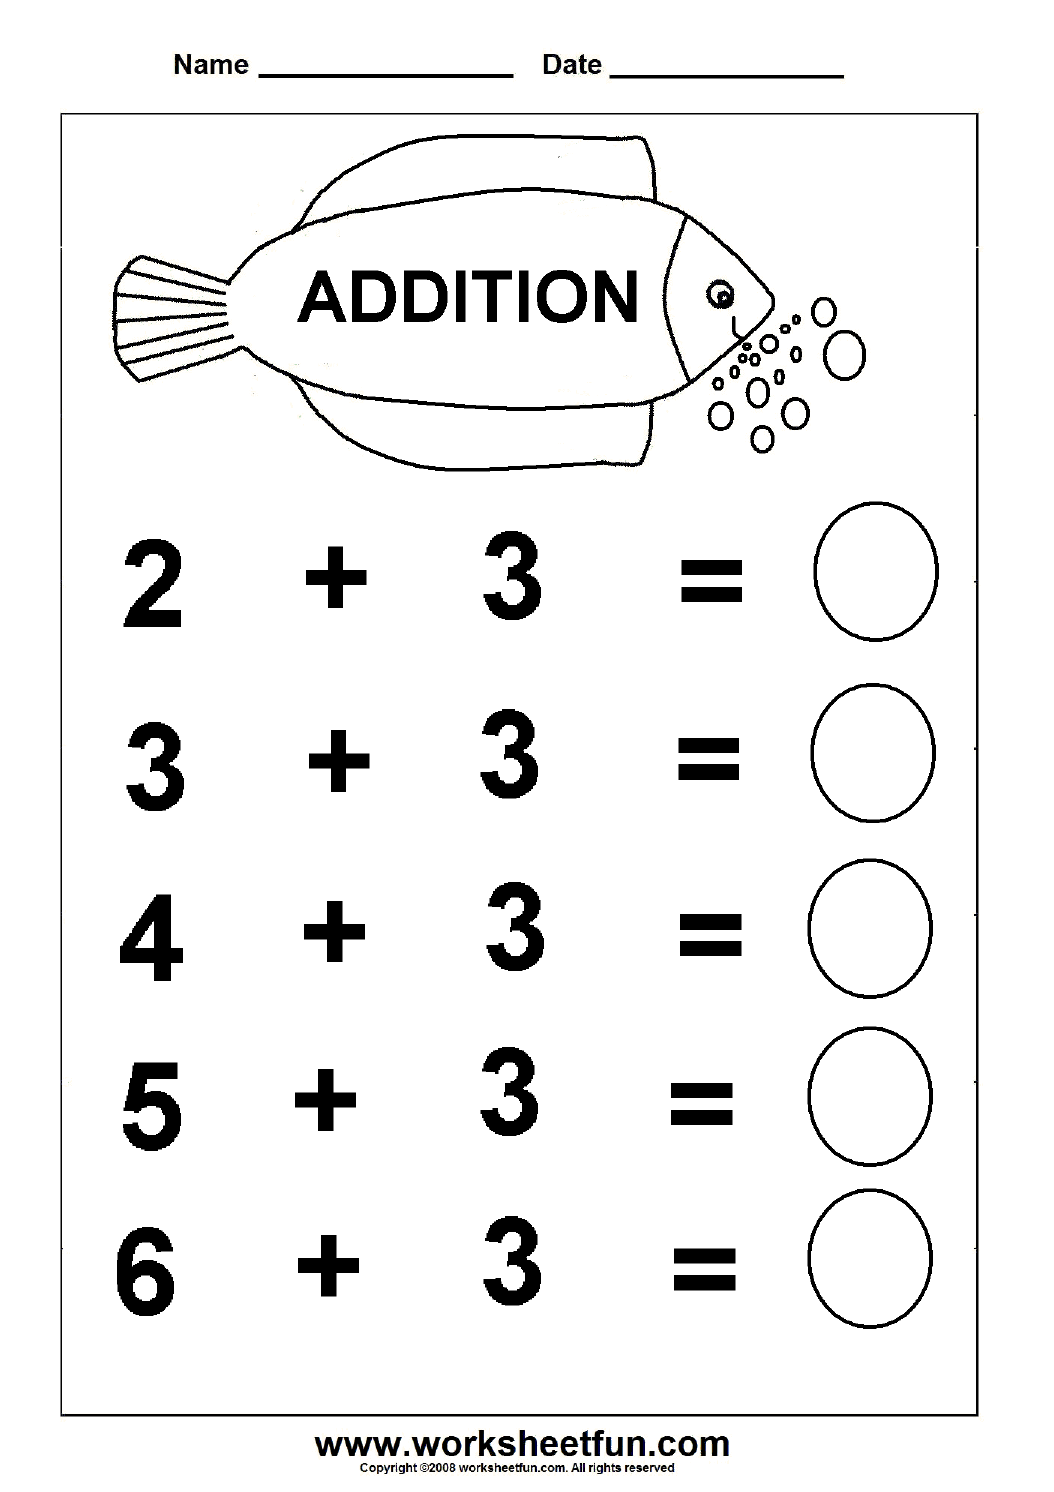 Beginner Addition 6 Kindergarten Addition Worksheets FREE – Kindergarten Addition Printable Worksheets